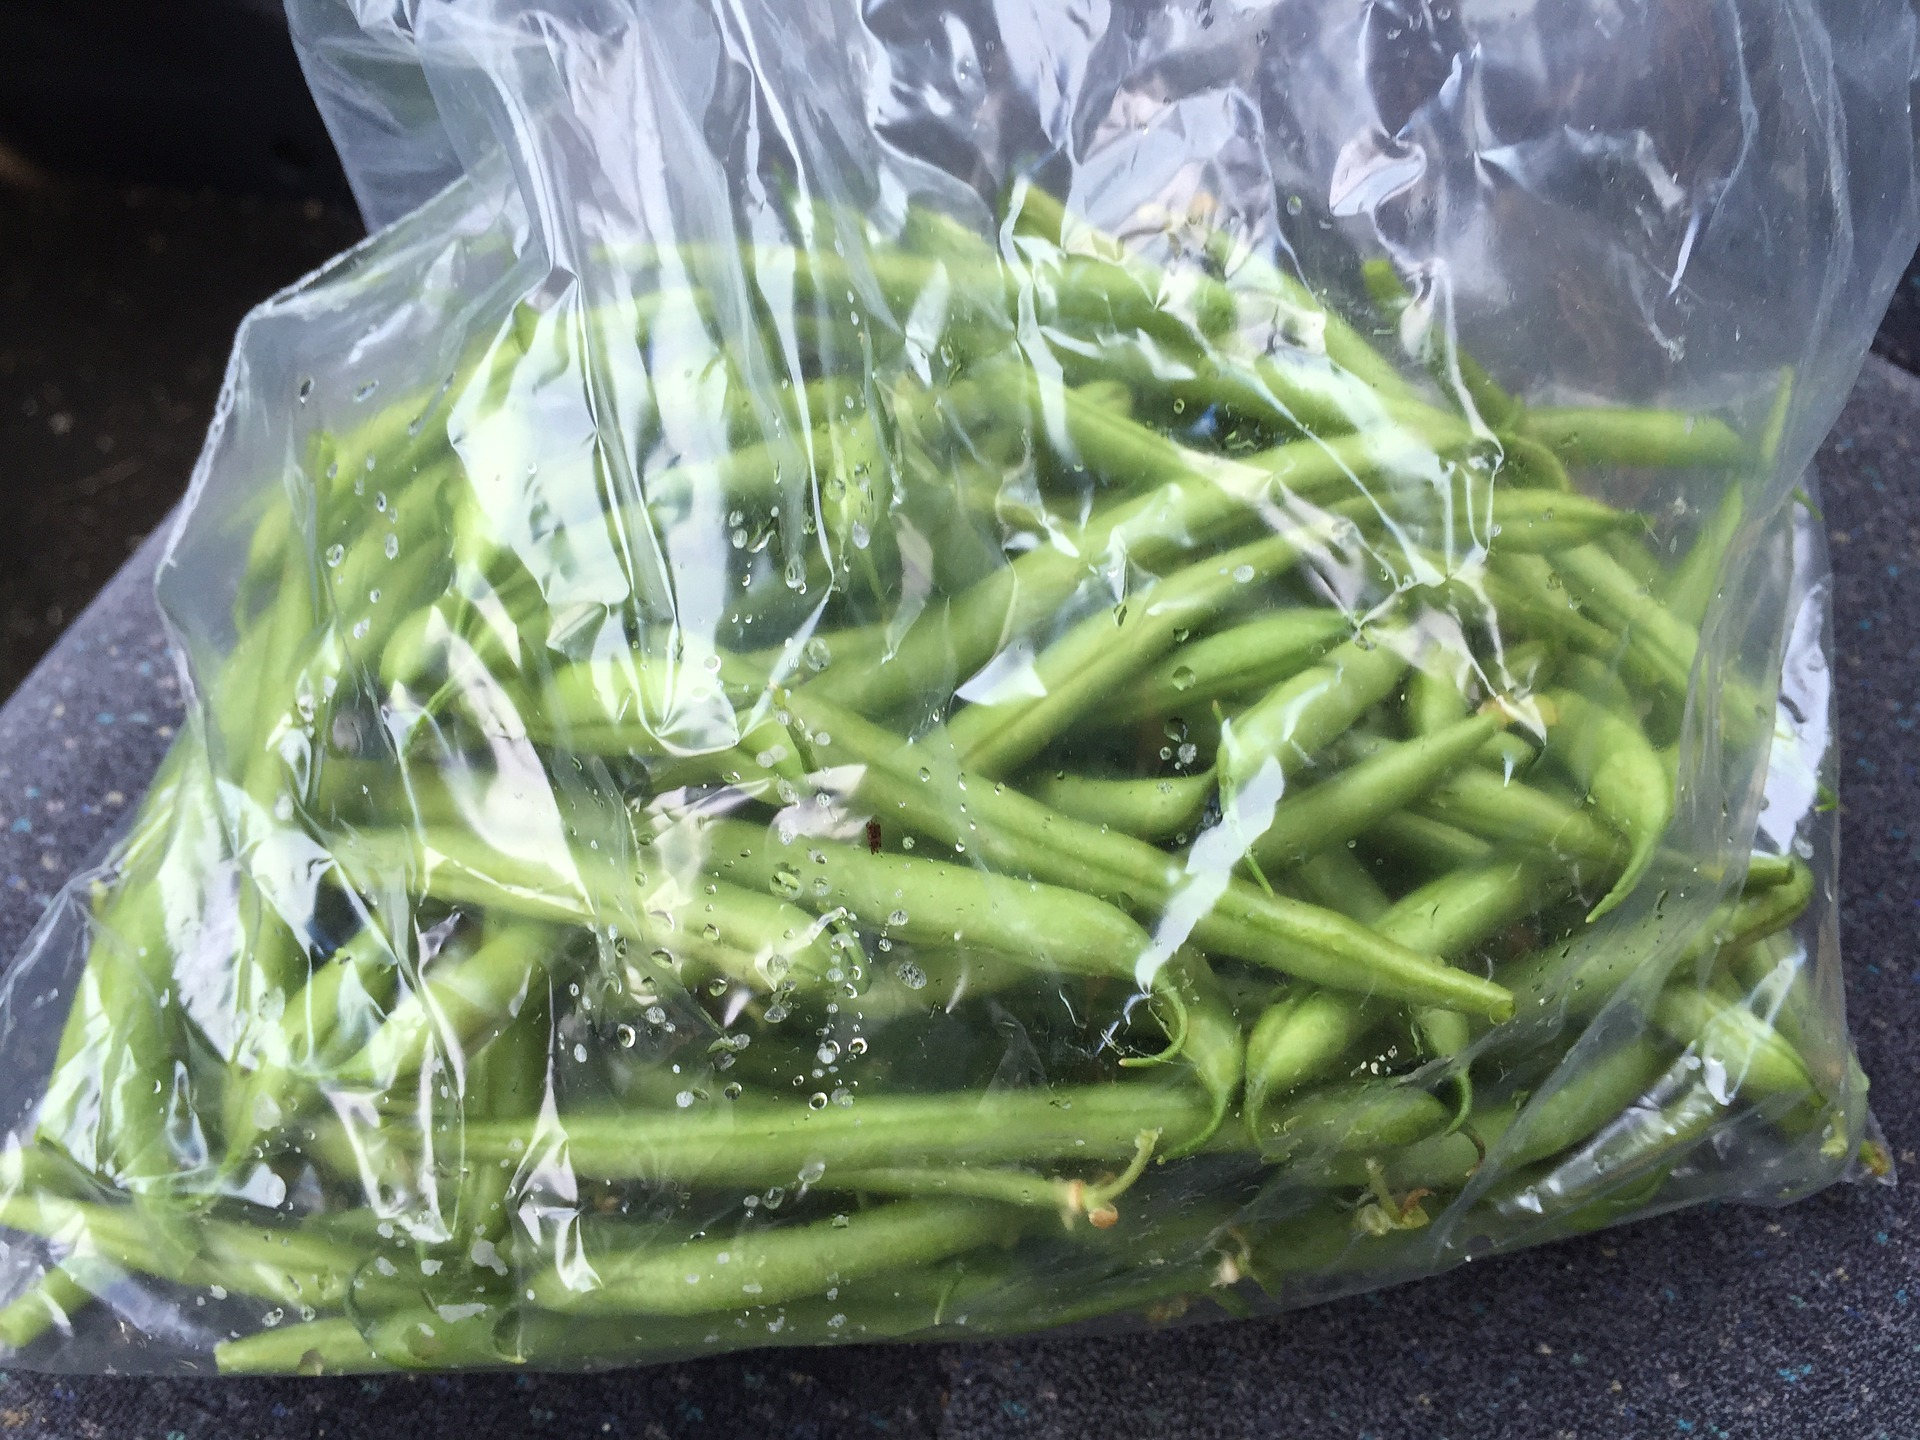 bag of fresh green beans